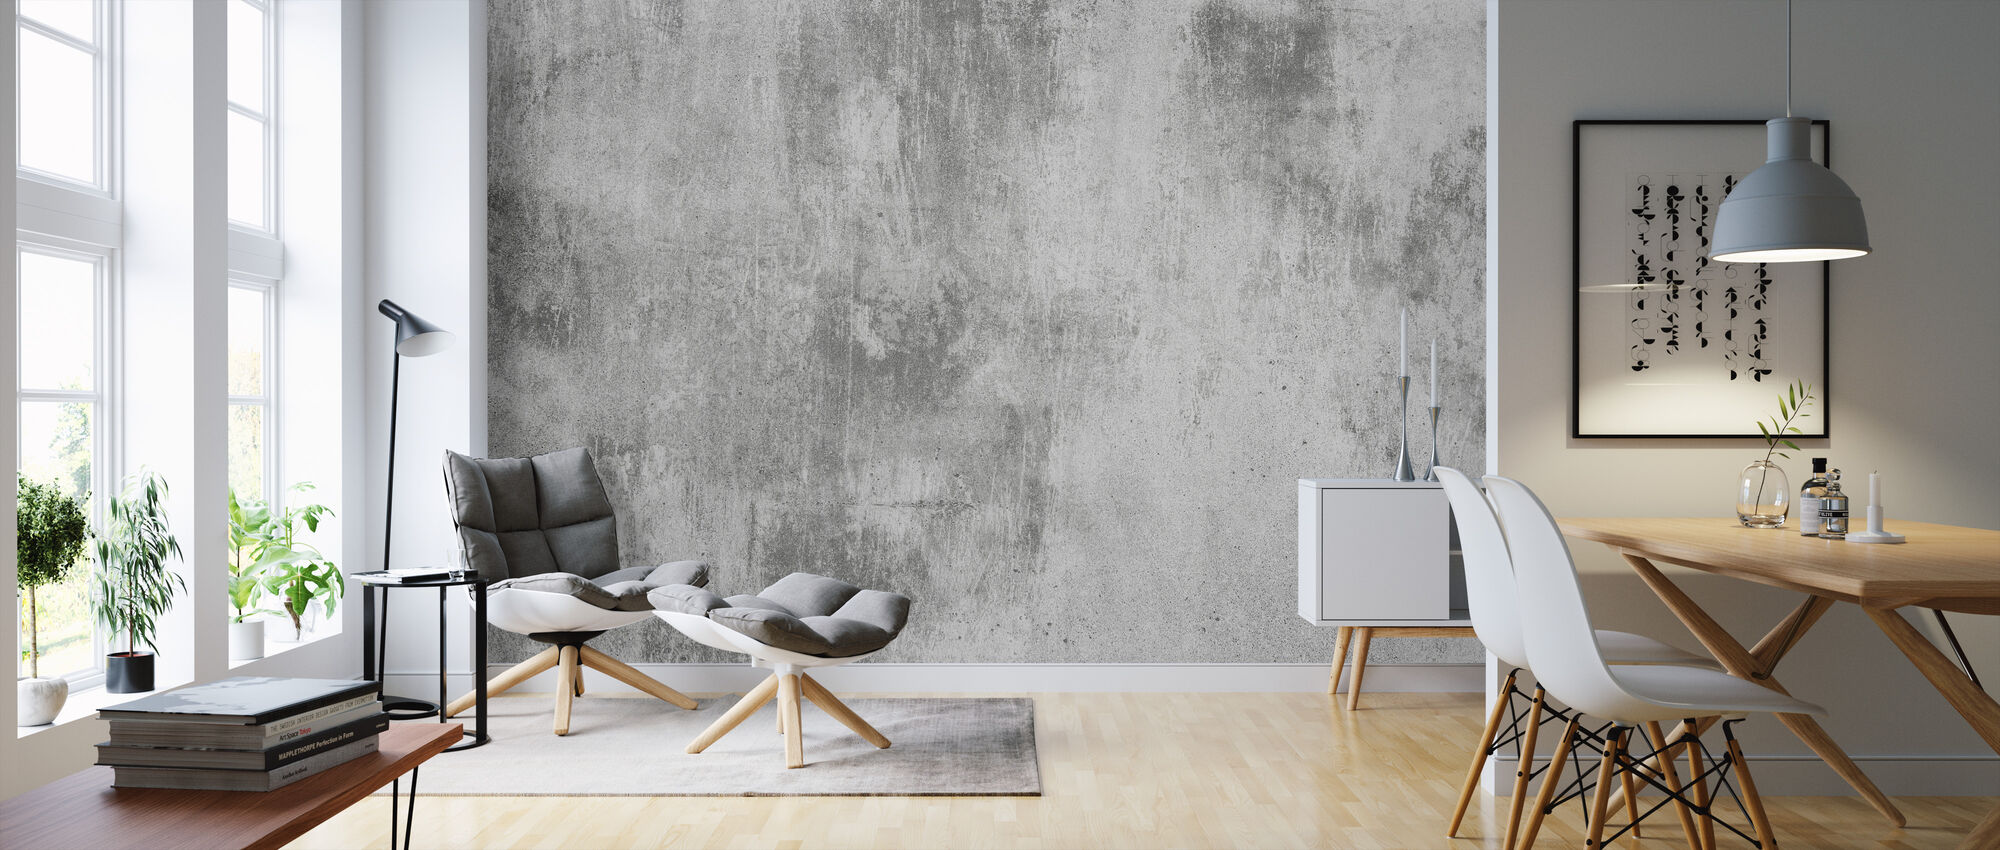 Concrete Wall - Wallpaper - Living Room